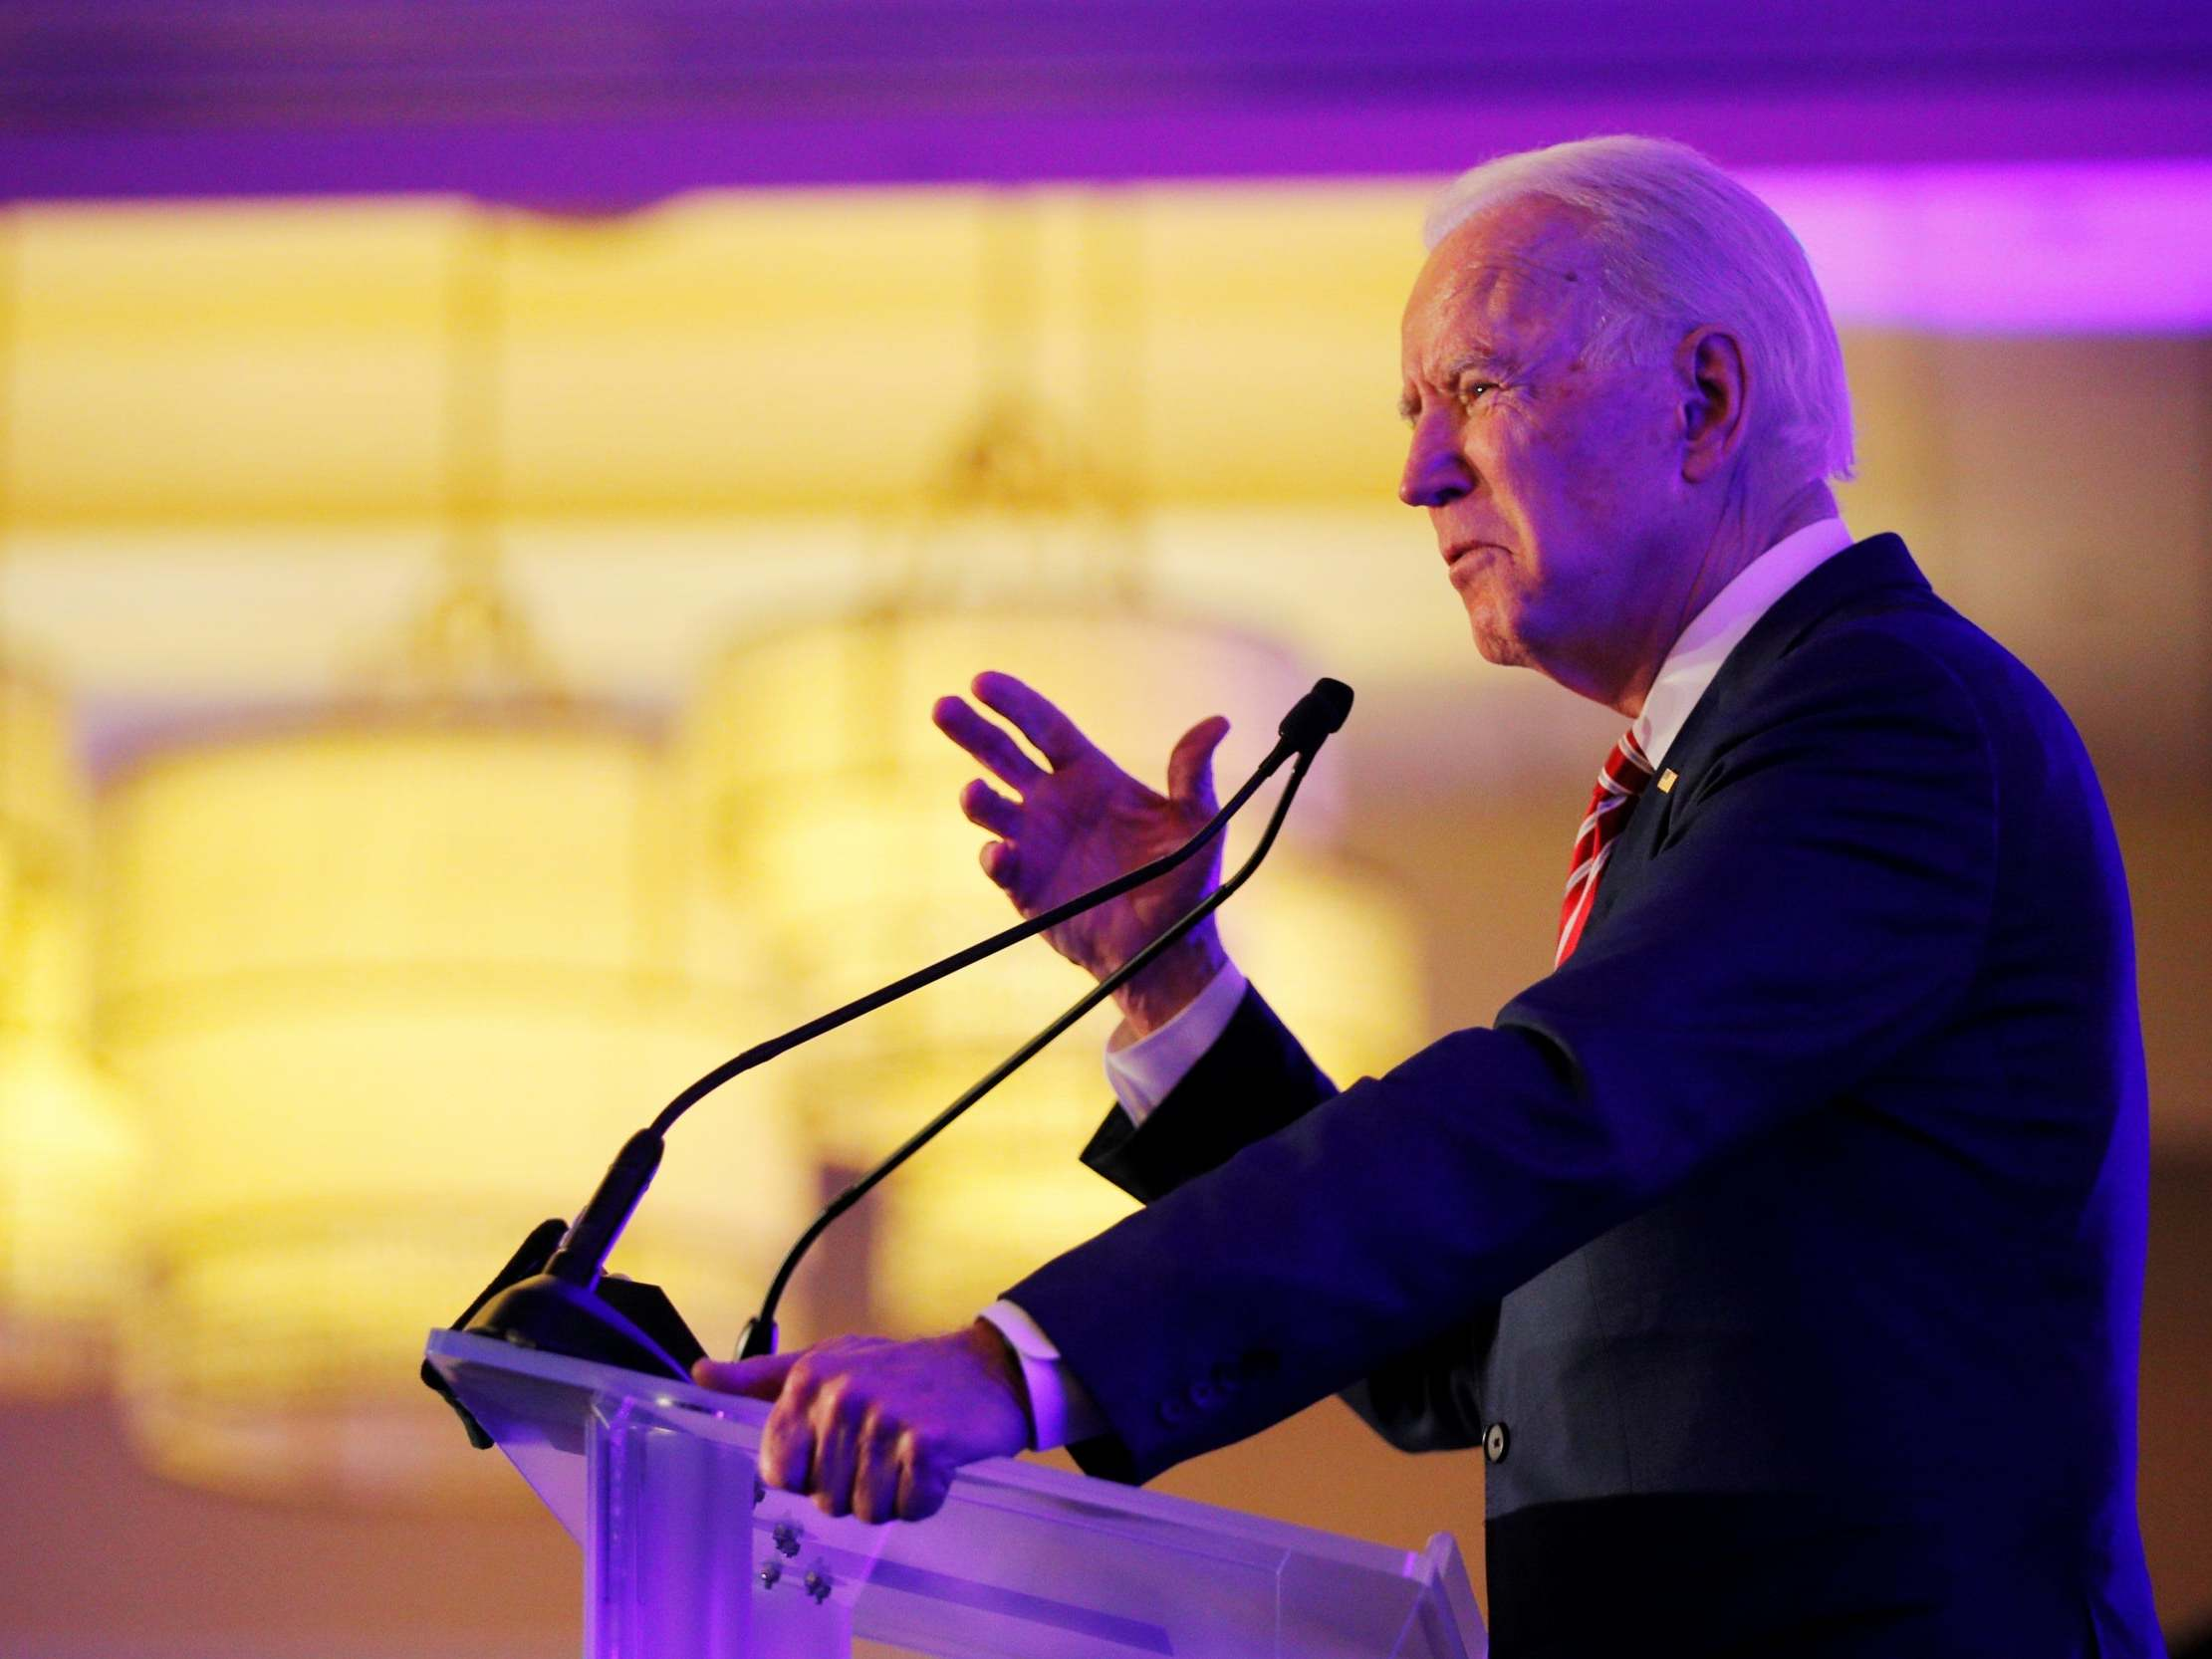 Joe Biden tells crowd he's a 'candidate for the United States Senate' in confused campaign speech